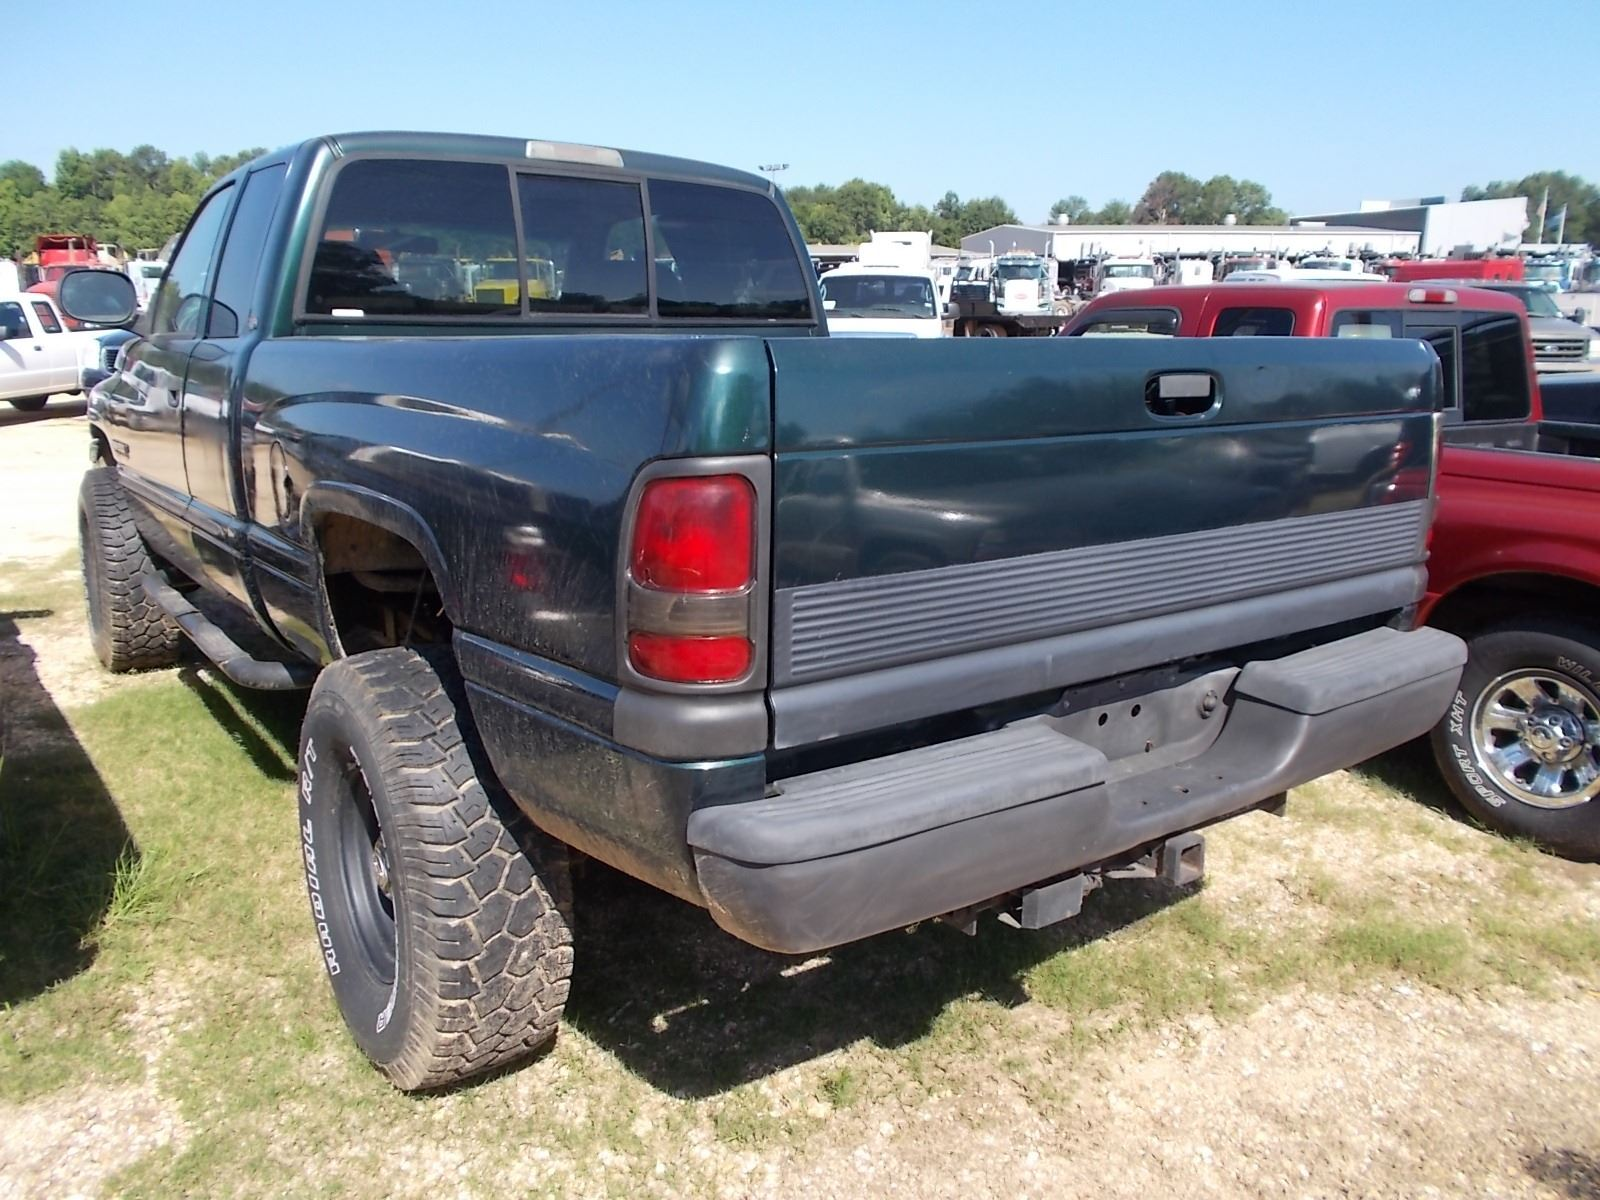 small resolution of  image 5 2001 dodge ram 2500 pickup vin sn 3b7kf23621g710601 4x4